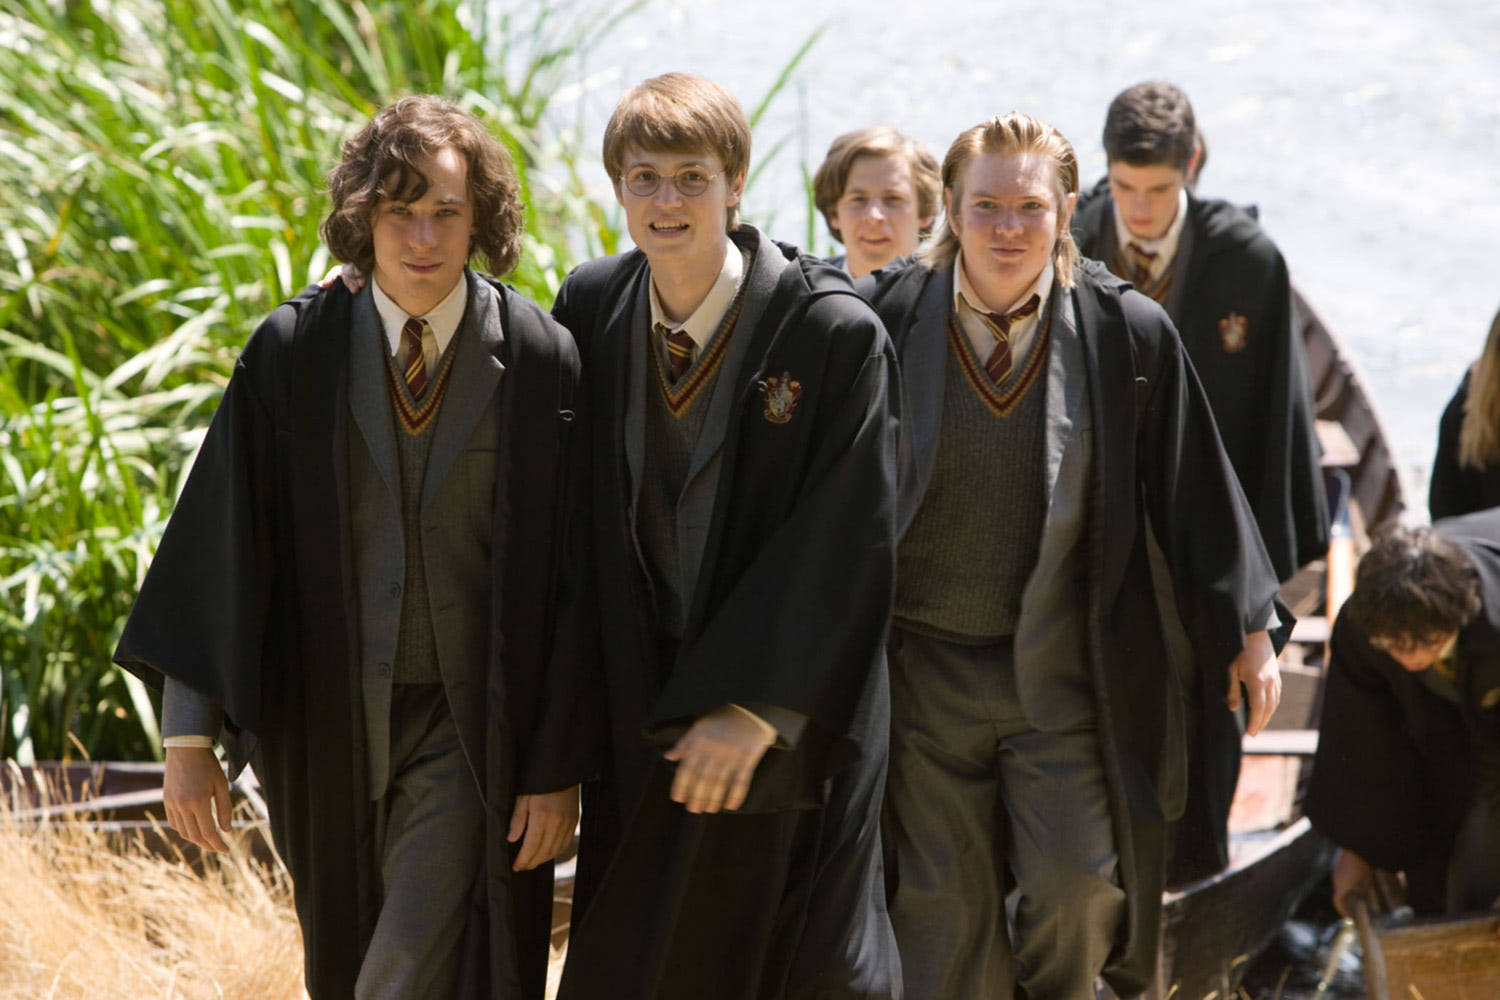 The young Marauders